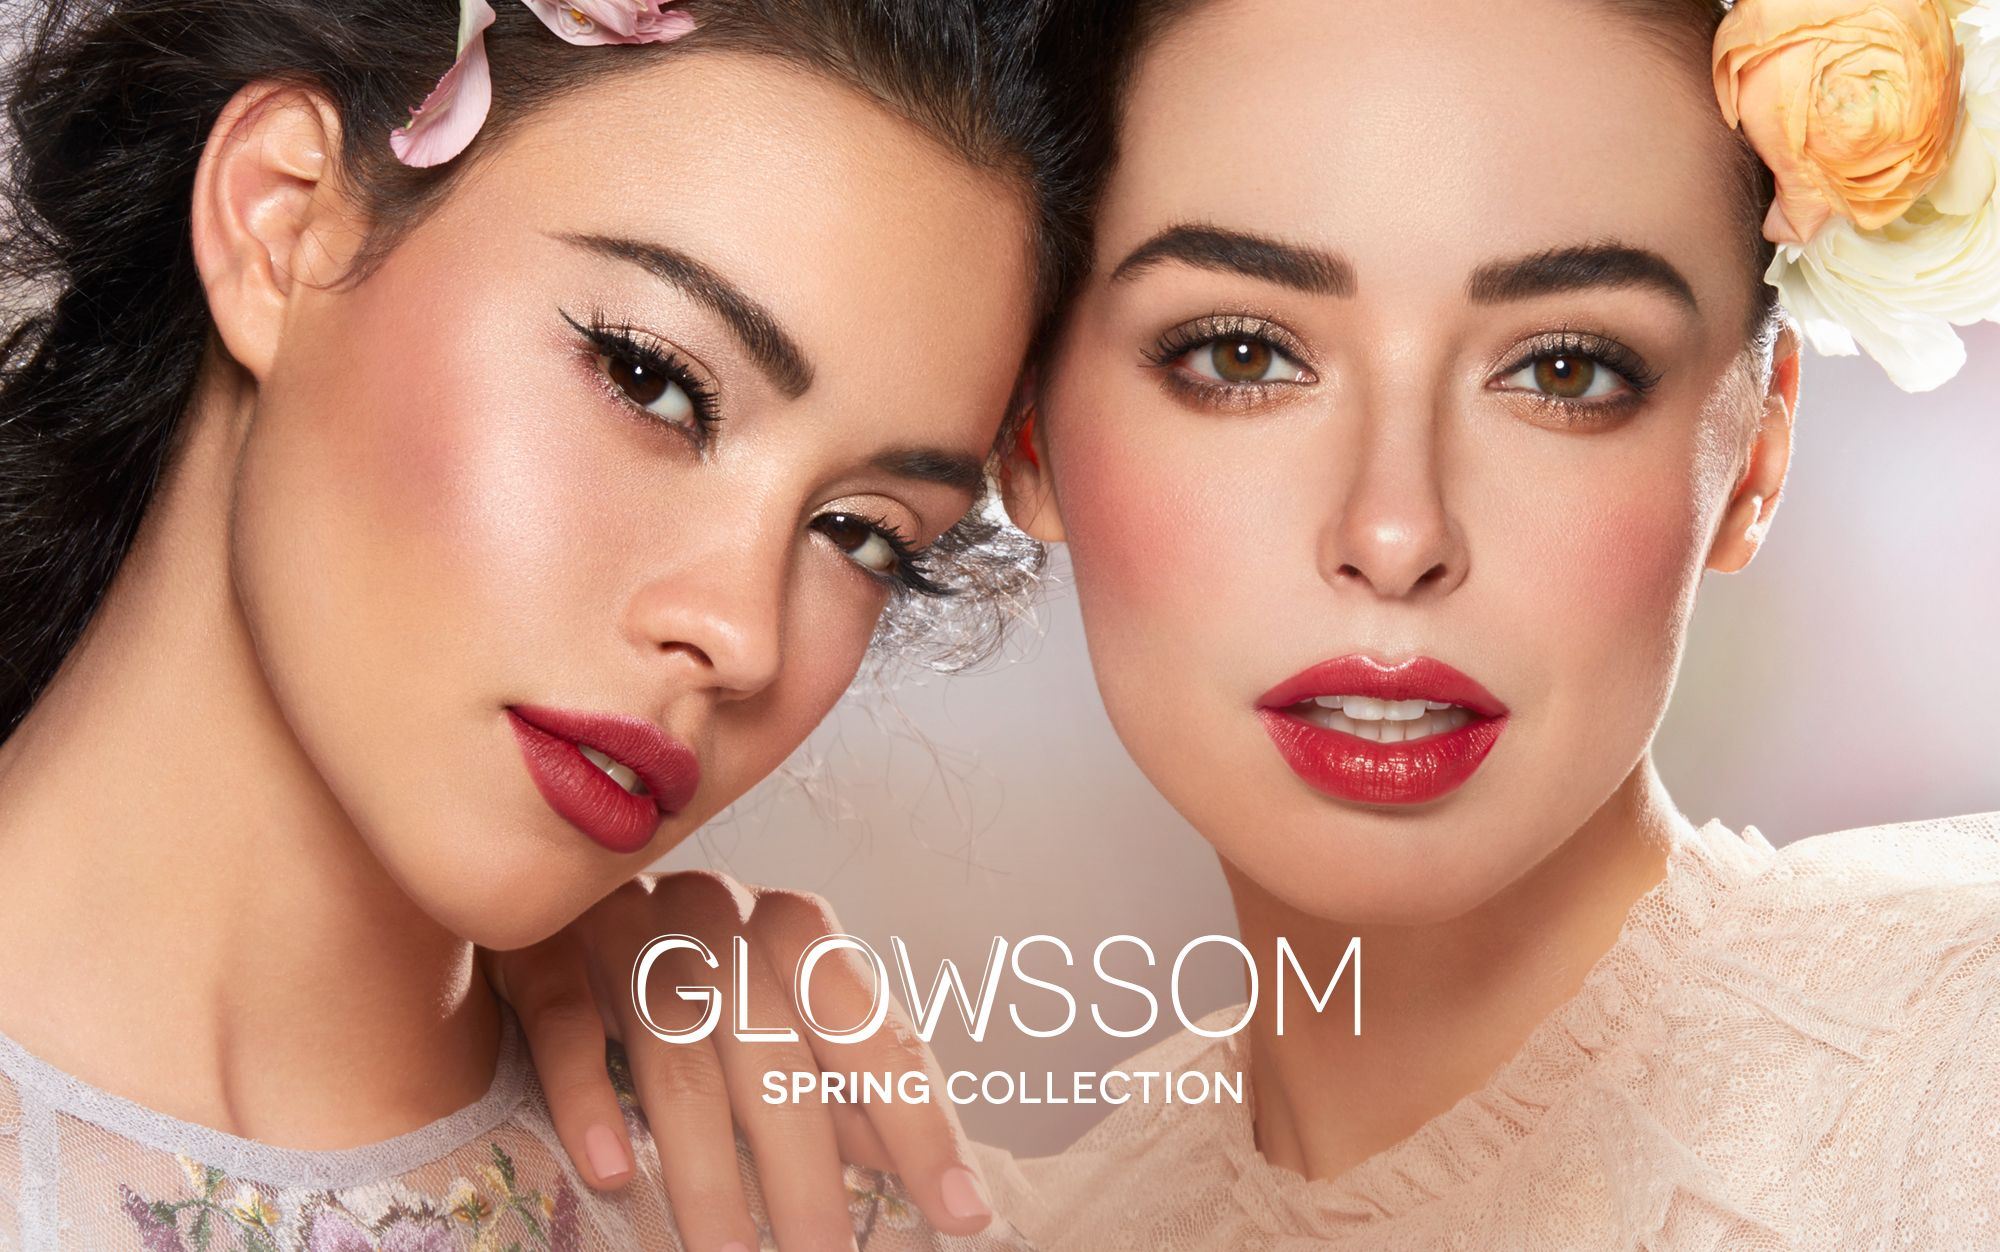 GLOWSSOM spring collection